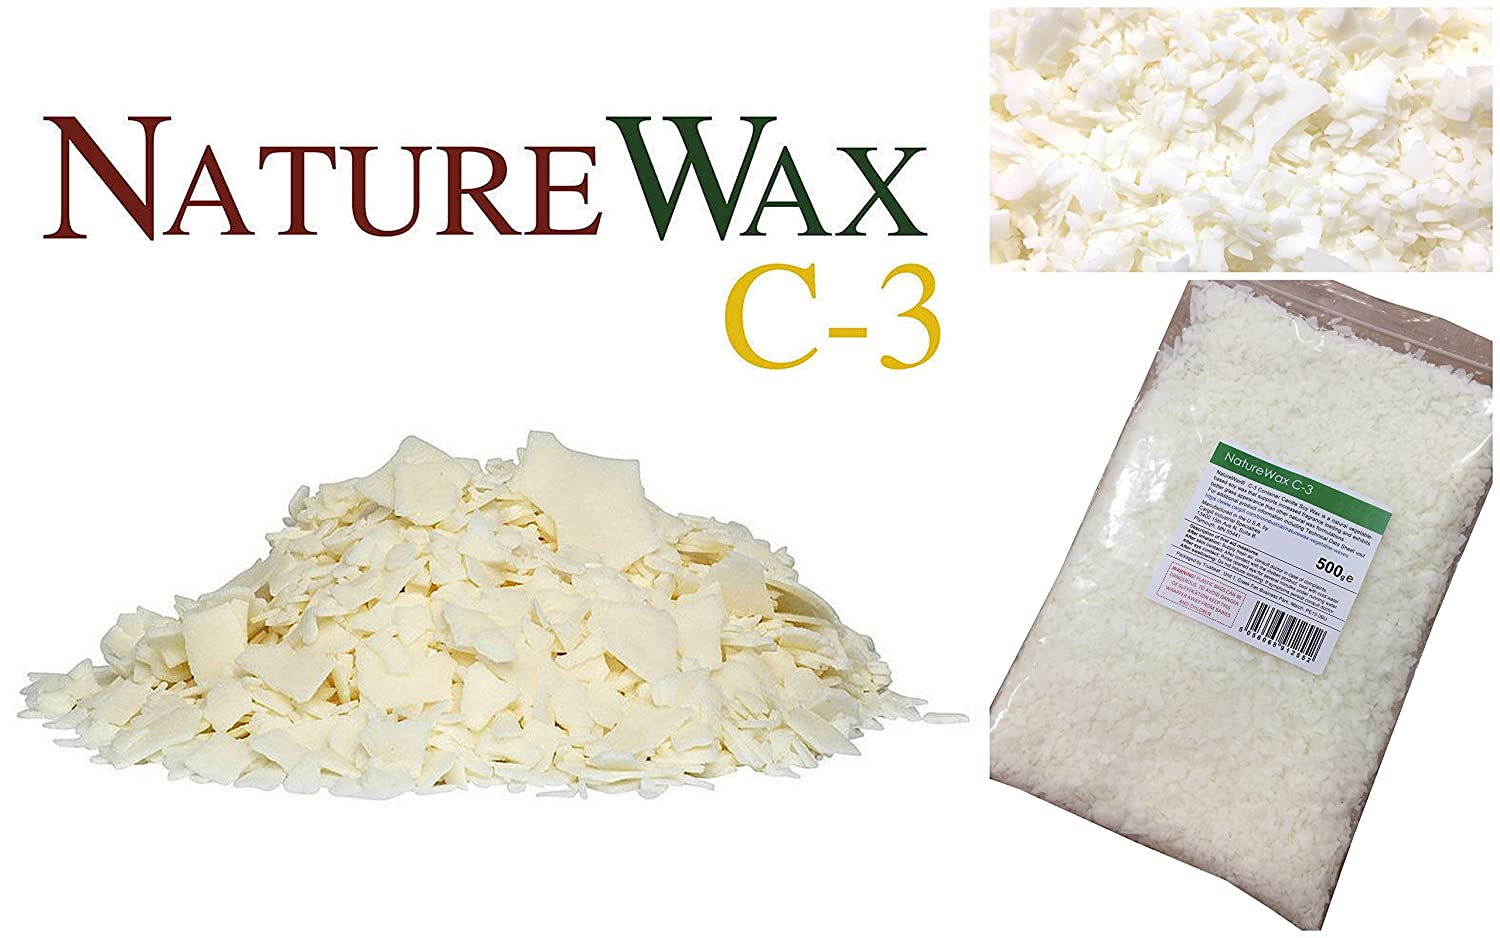 500g Naturewax C3 / C-3 Soy Container Candle Wax, - 100% Natural Soy / Soya Wax Kerax